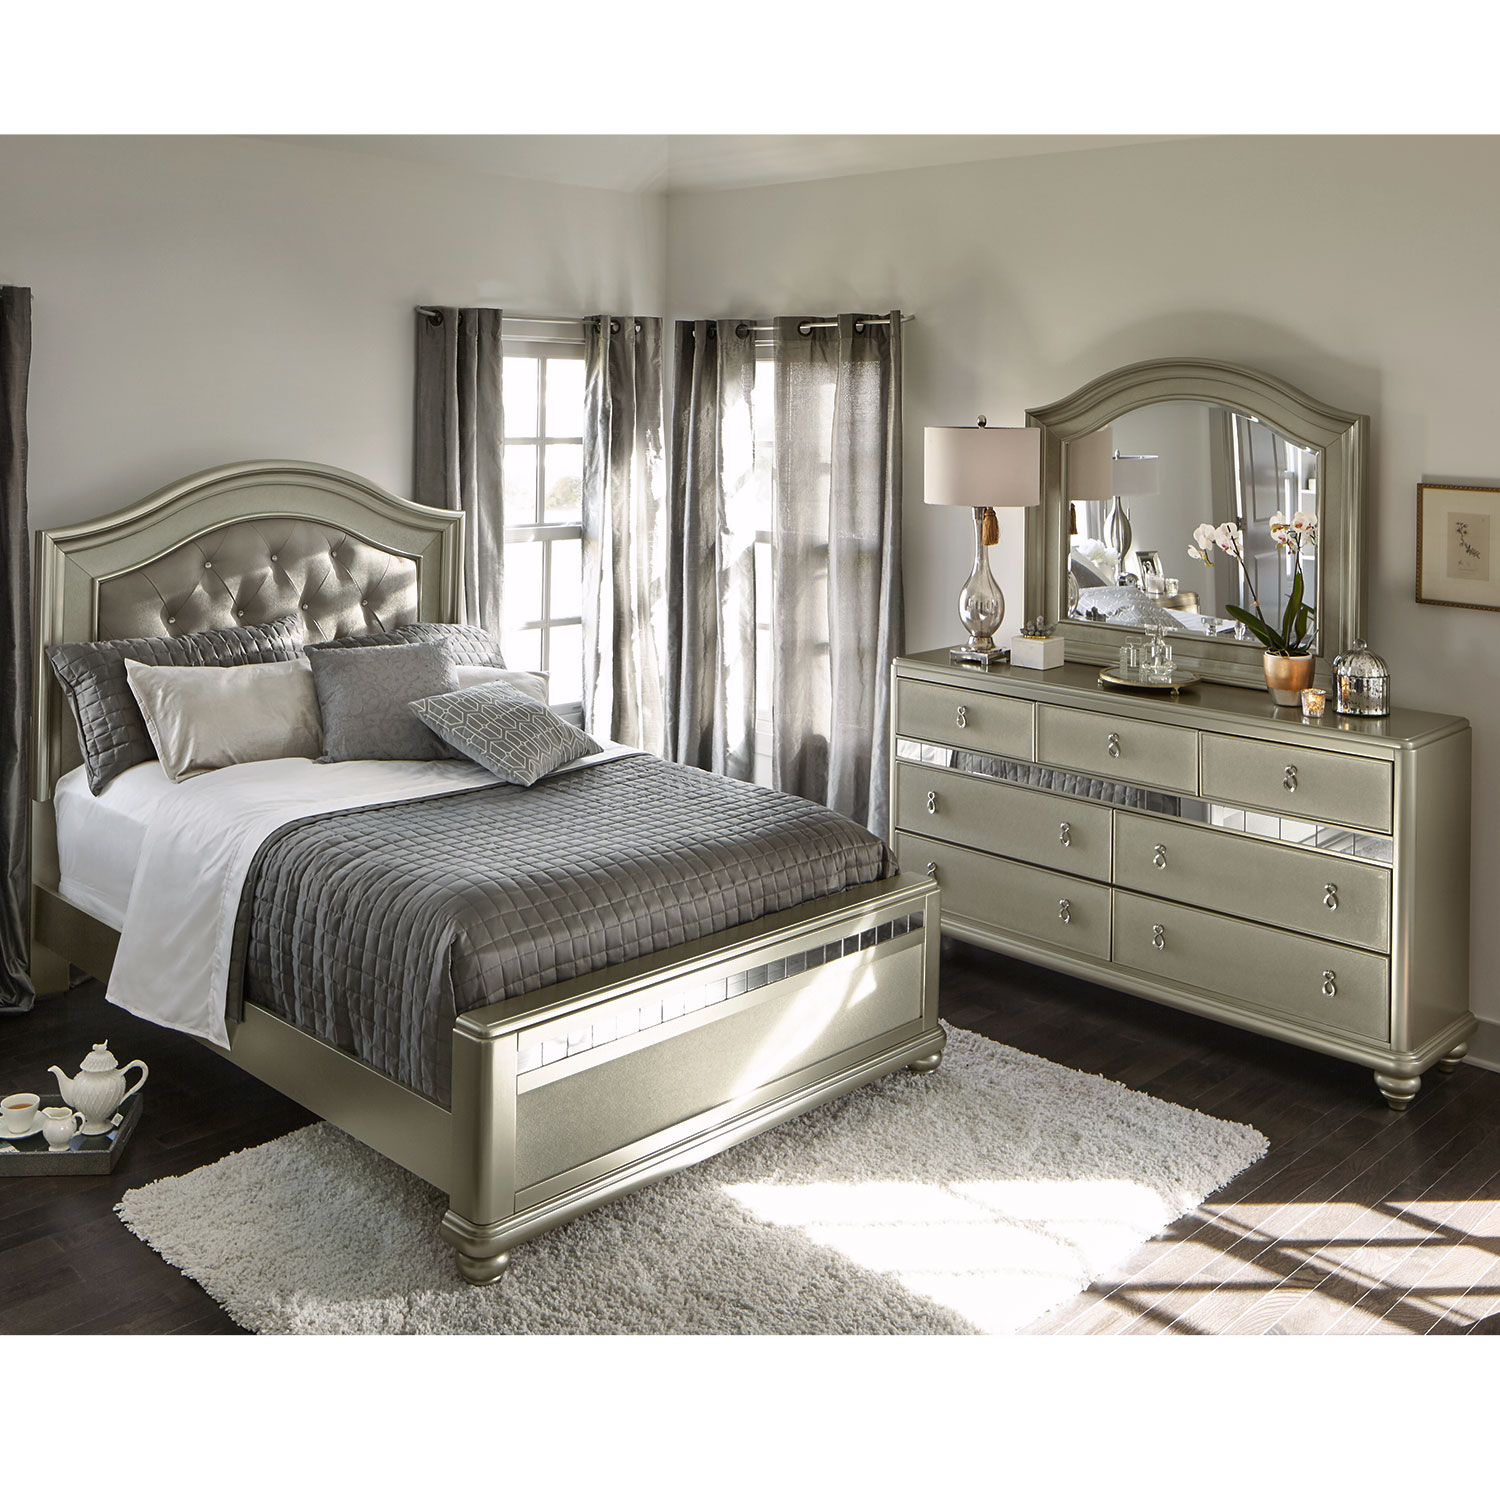 Bedroom Furniture Queen Sets serena queen 5-piece bedroom set - platinum | value city furniture